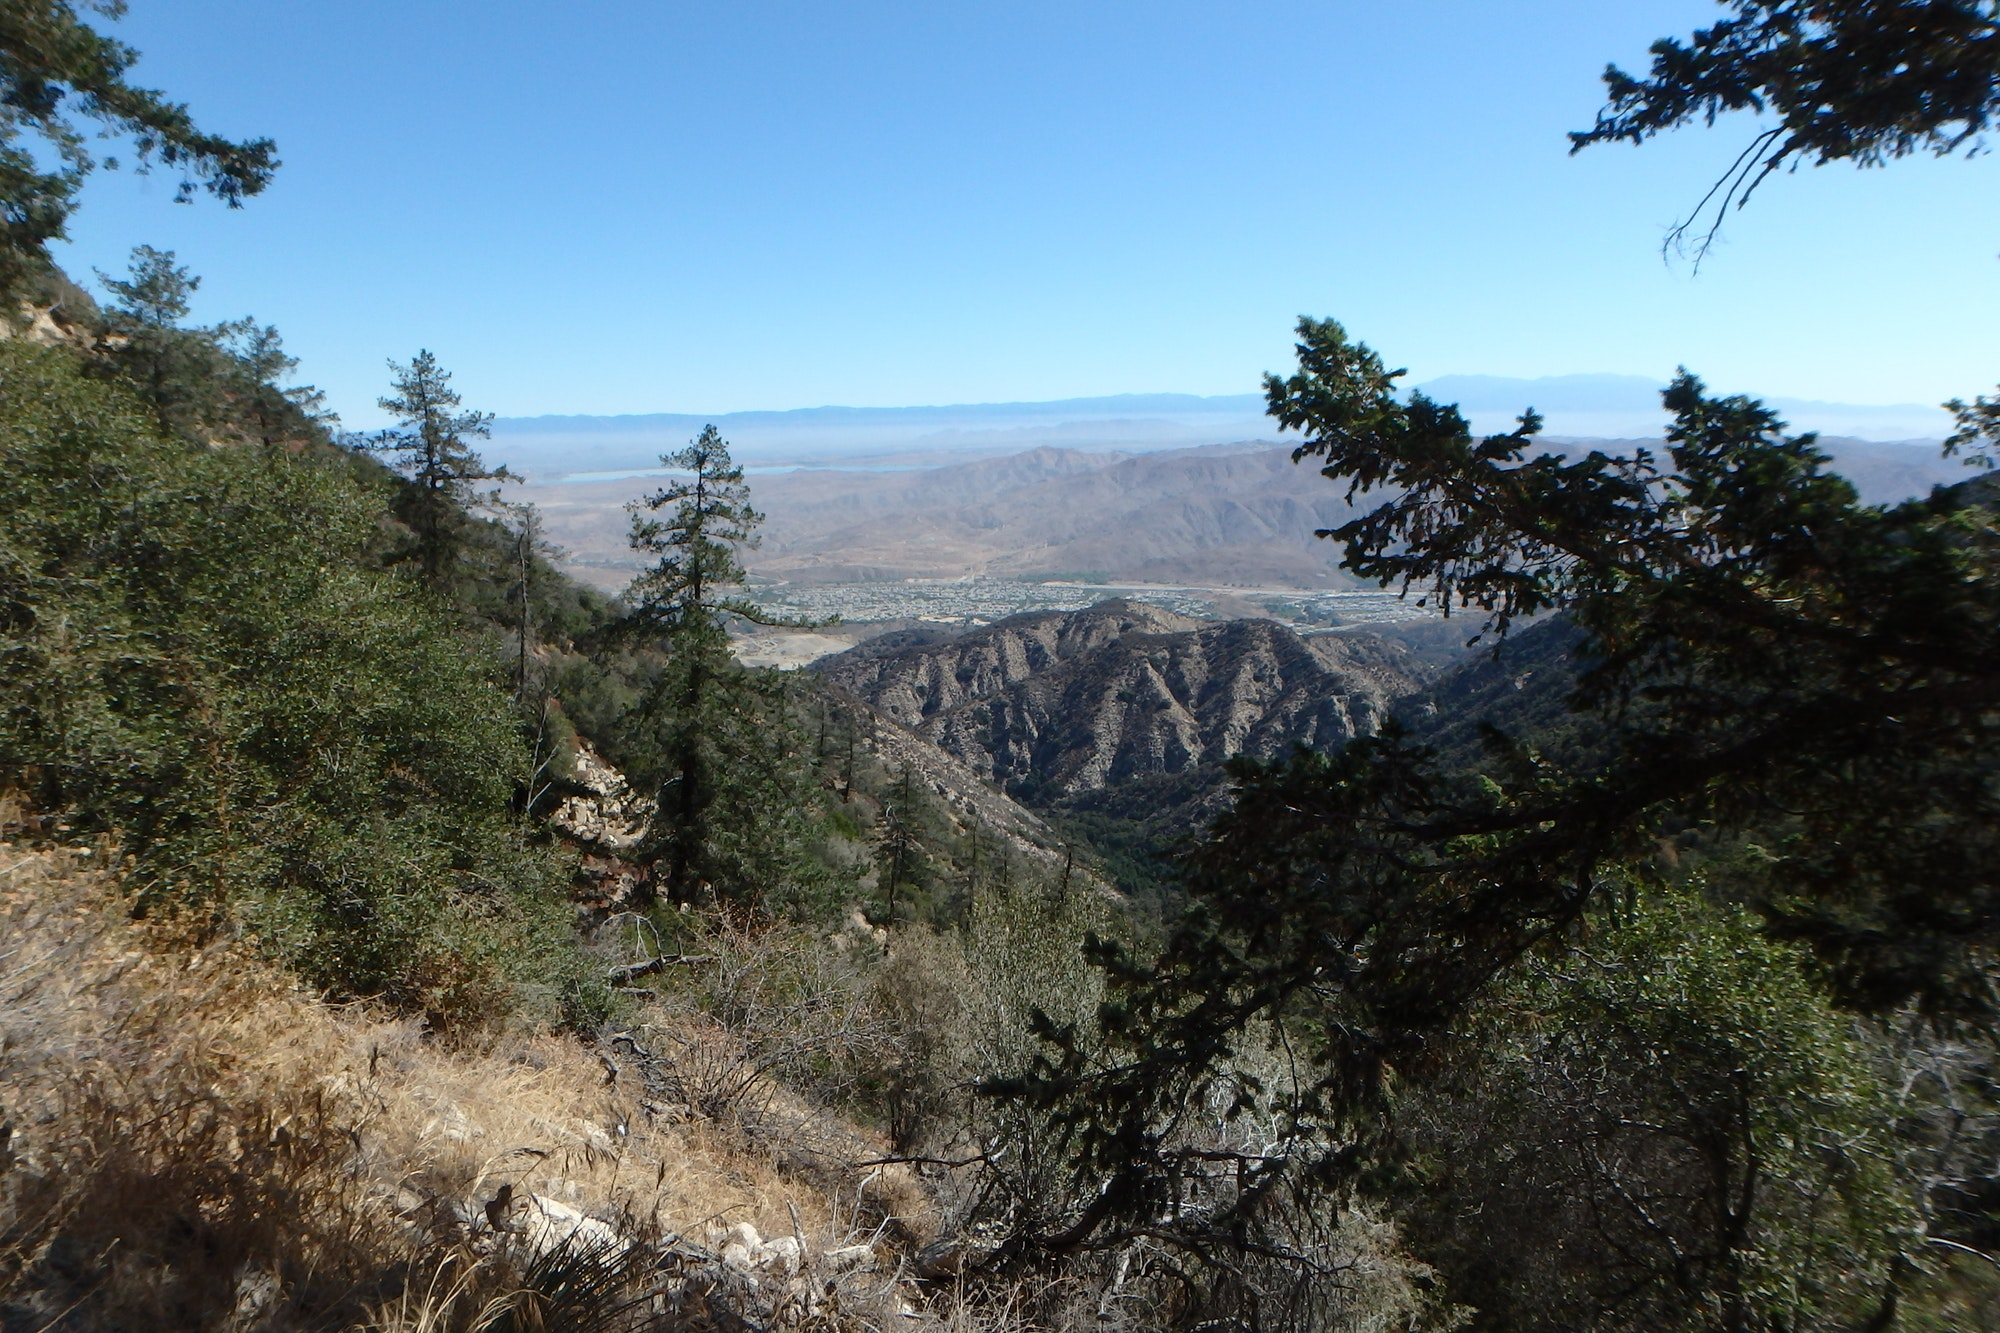 View from a mountain over a valley.